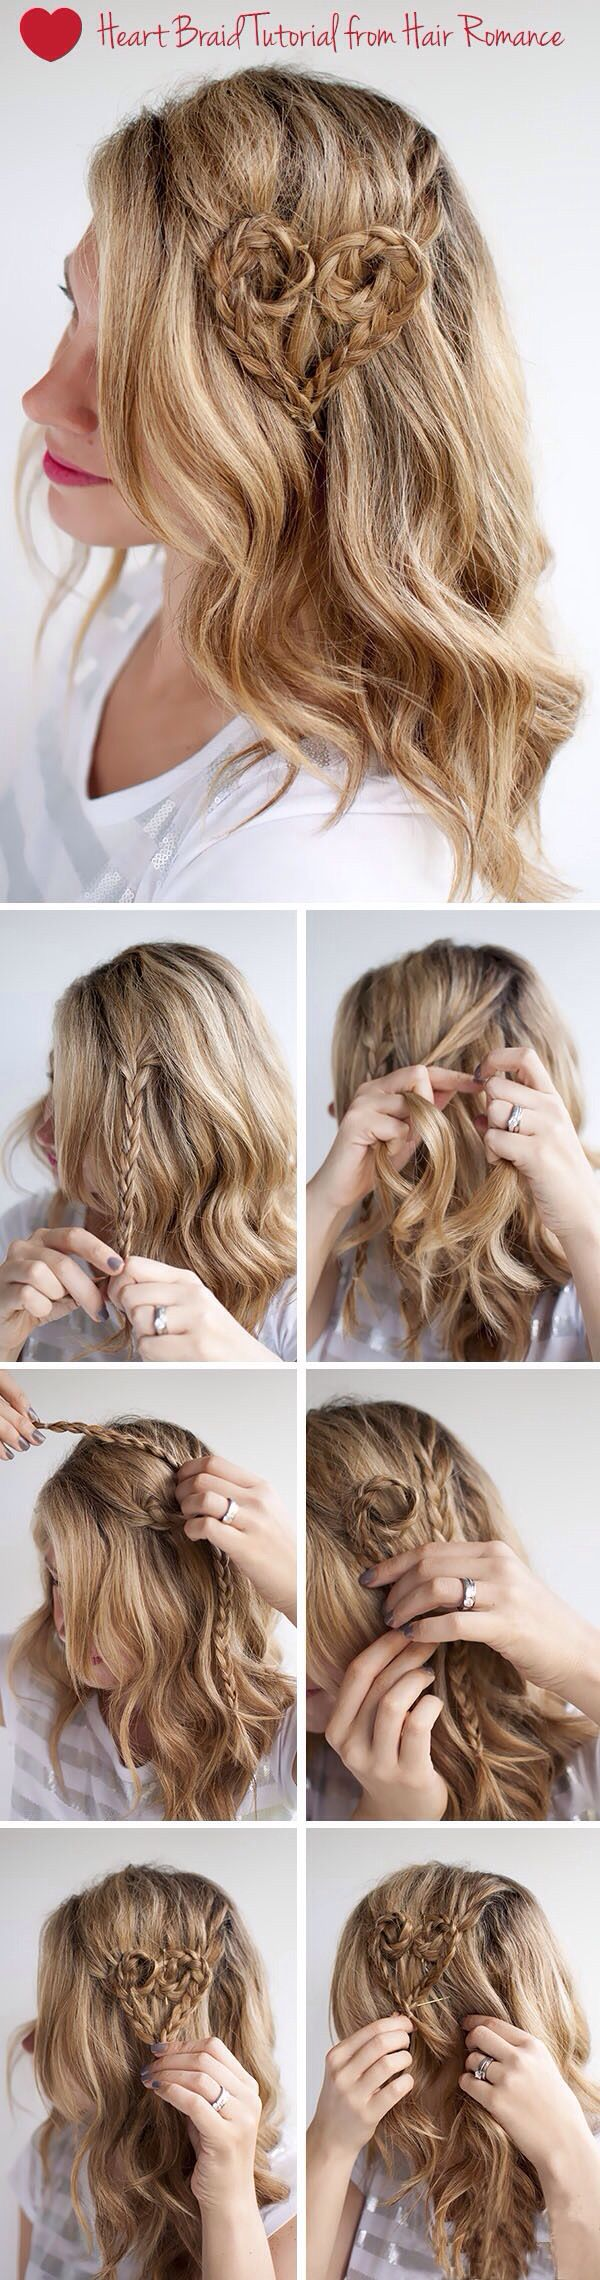 Very easy hairstyle my style pinterest easy hairstyles easy